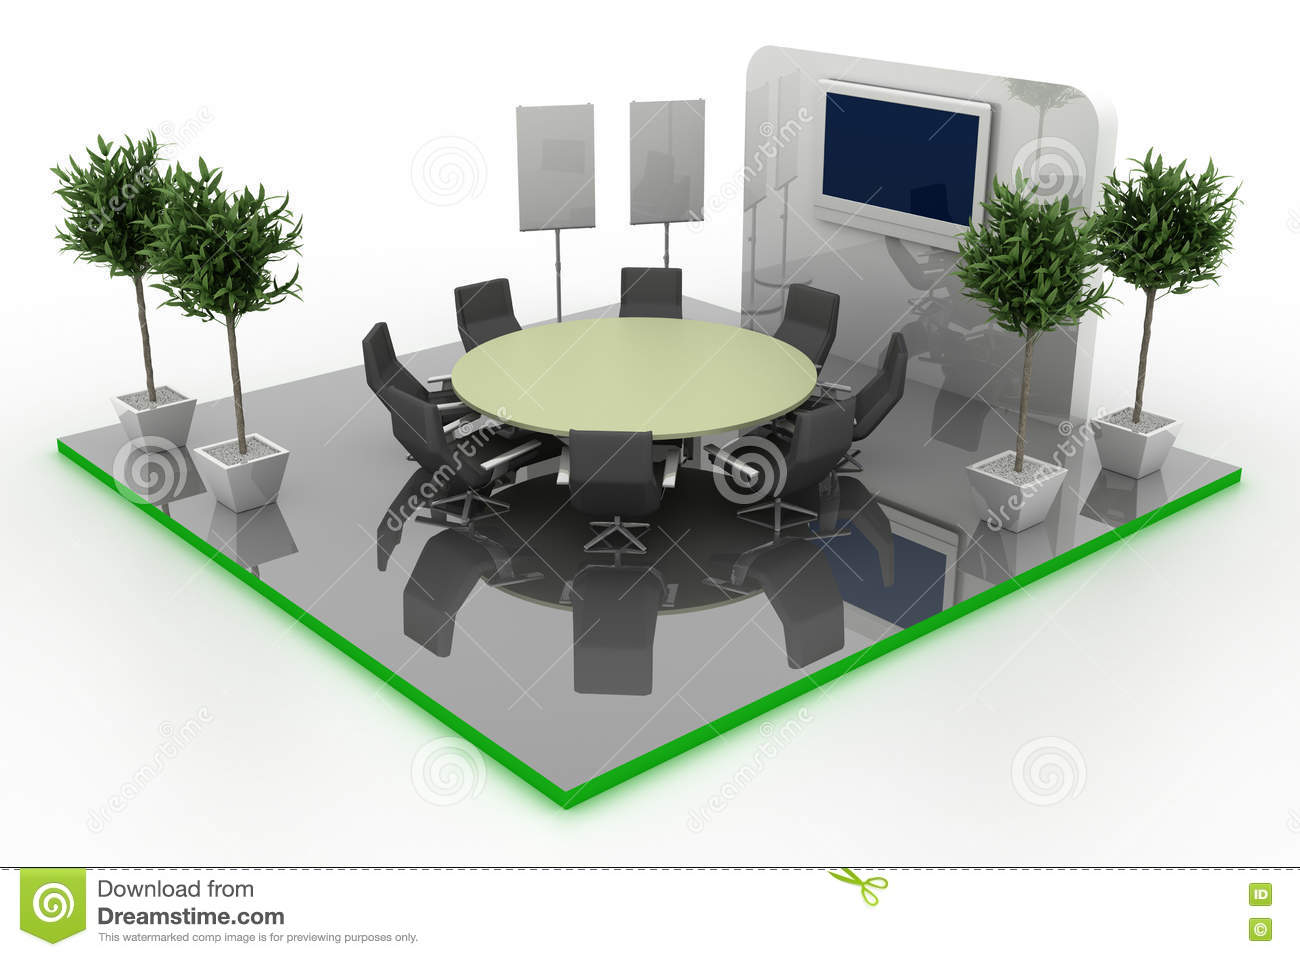 Exhibition Booth Floor Plan : Empty exhibition booth copy space illustration stock illustration